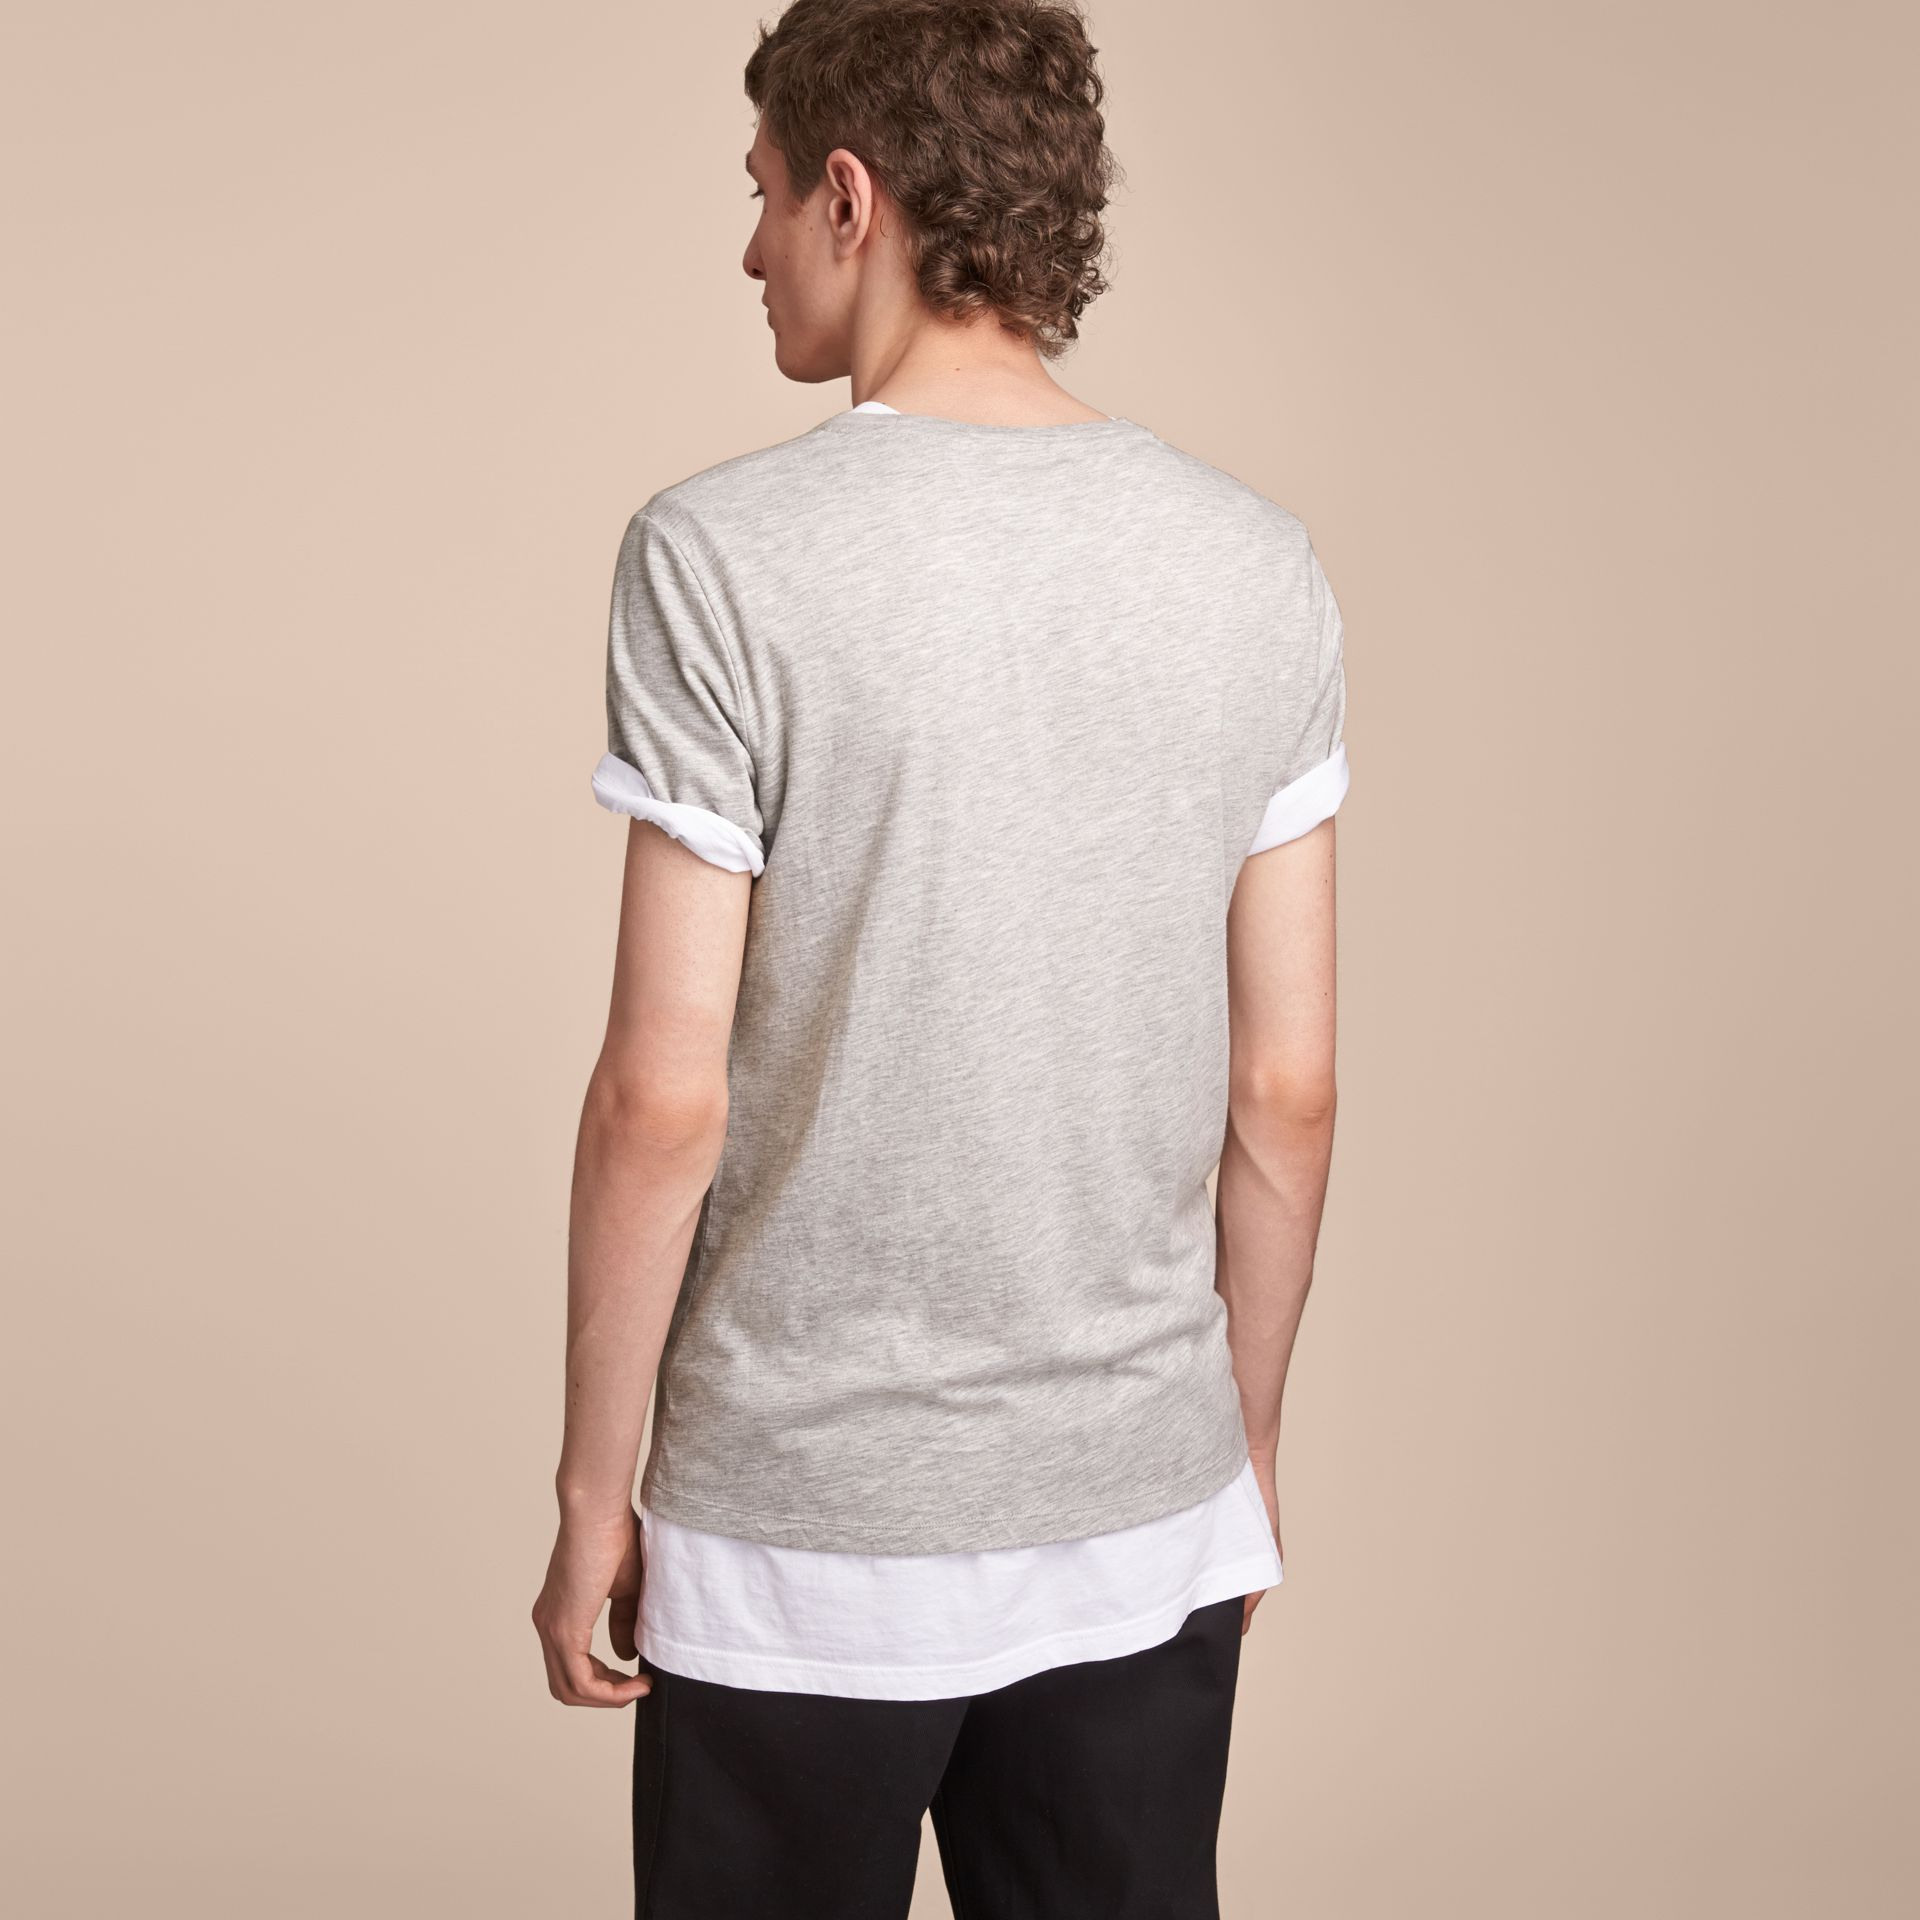 Contrast Motif Cotton Blend T-shirt Pale Grey Melange - gallery image 3